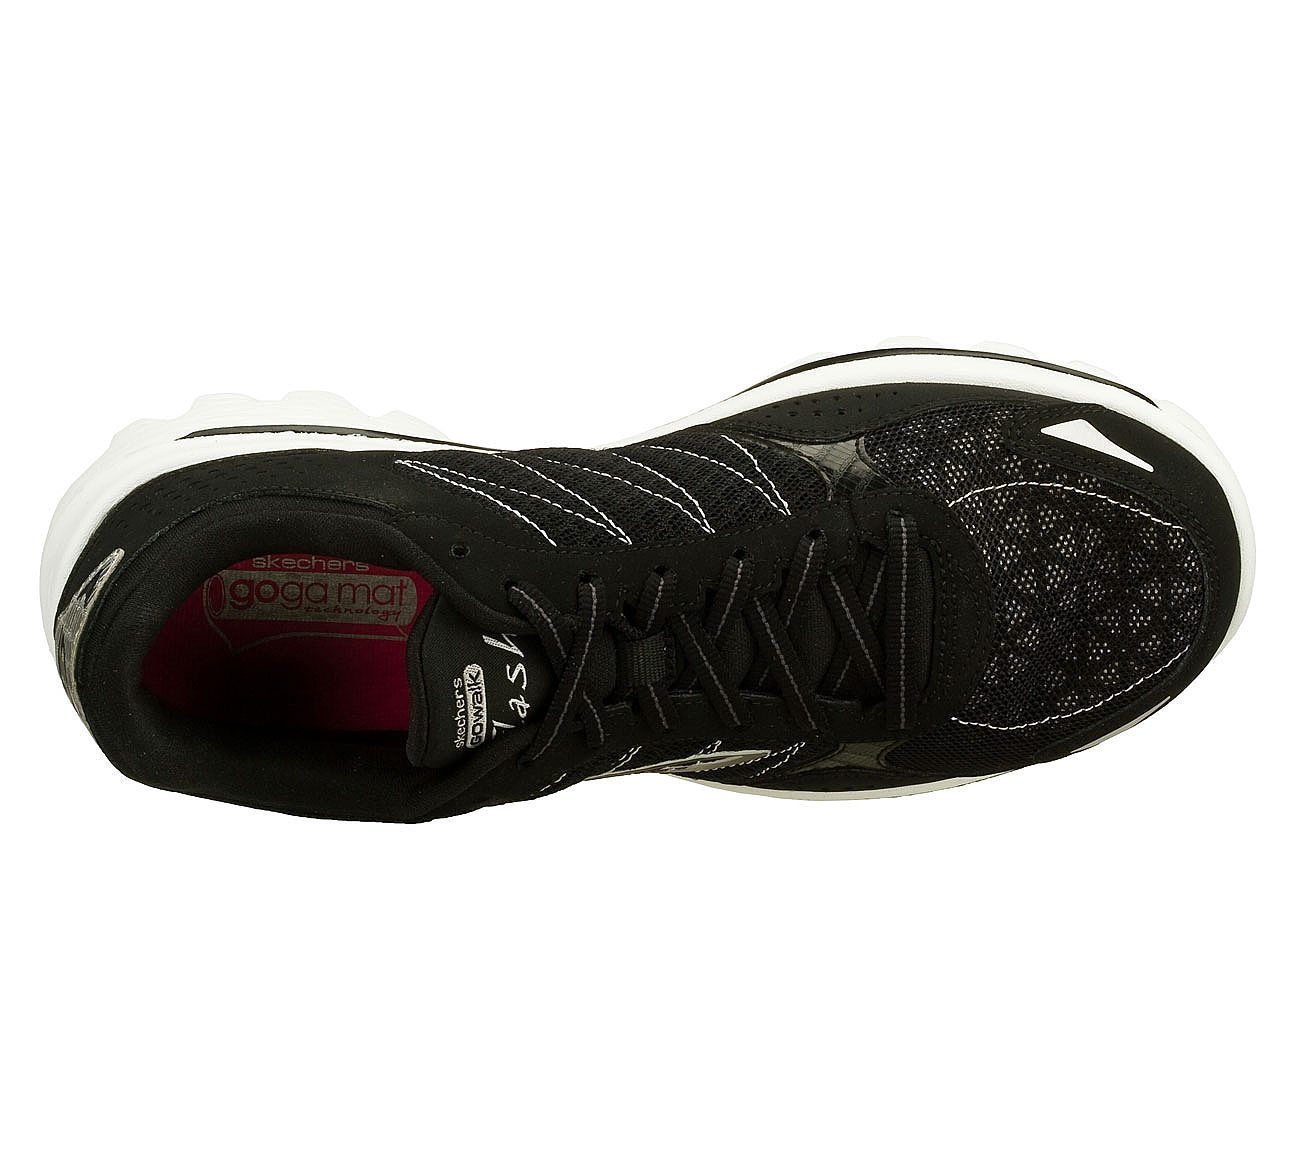 Skechers Acquista Off32 Sconti Skechers Acquista Parma 76qgZ